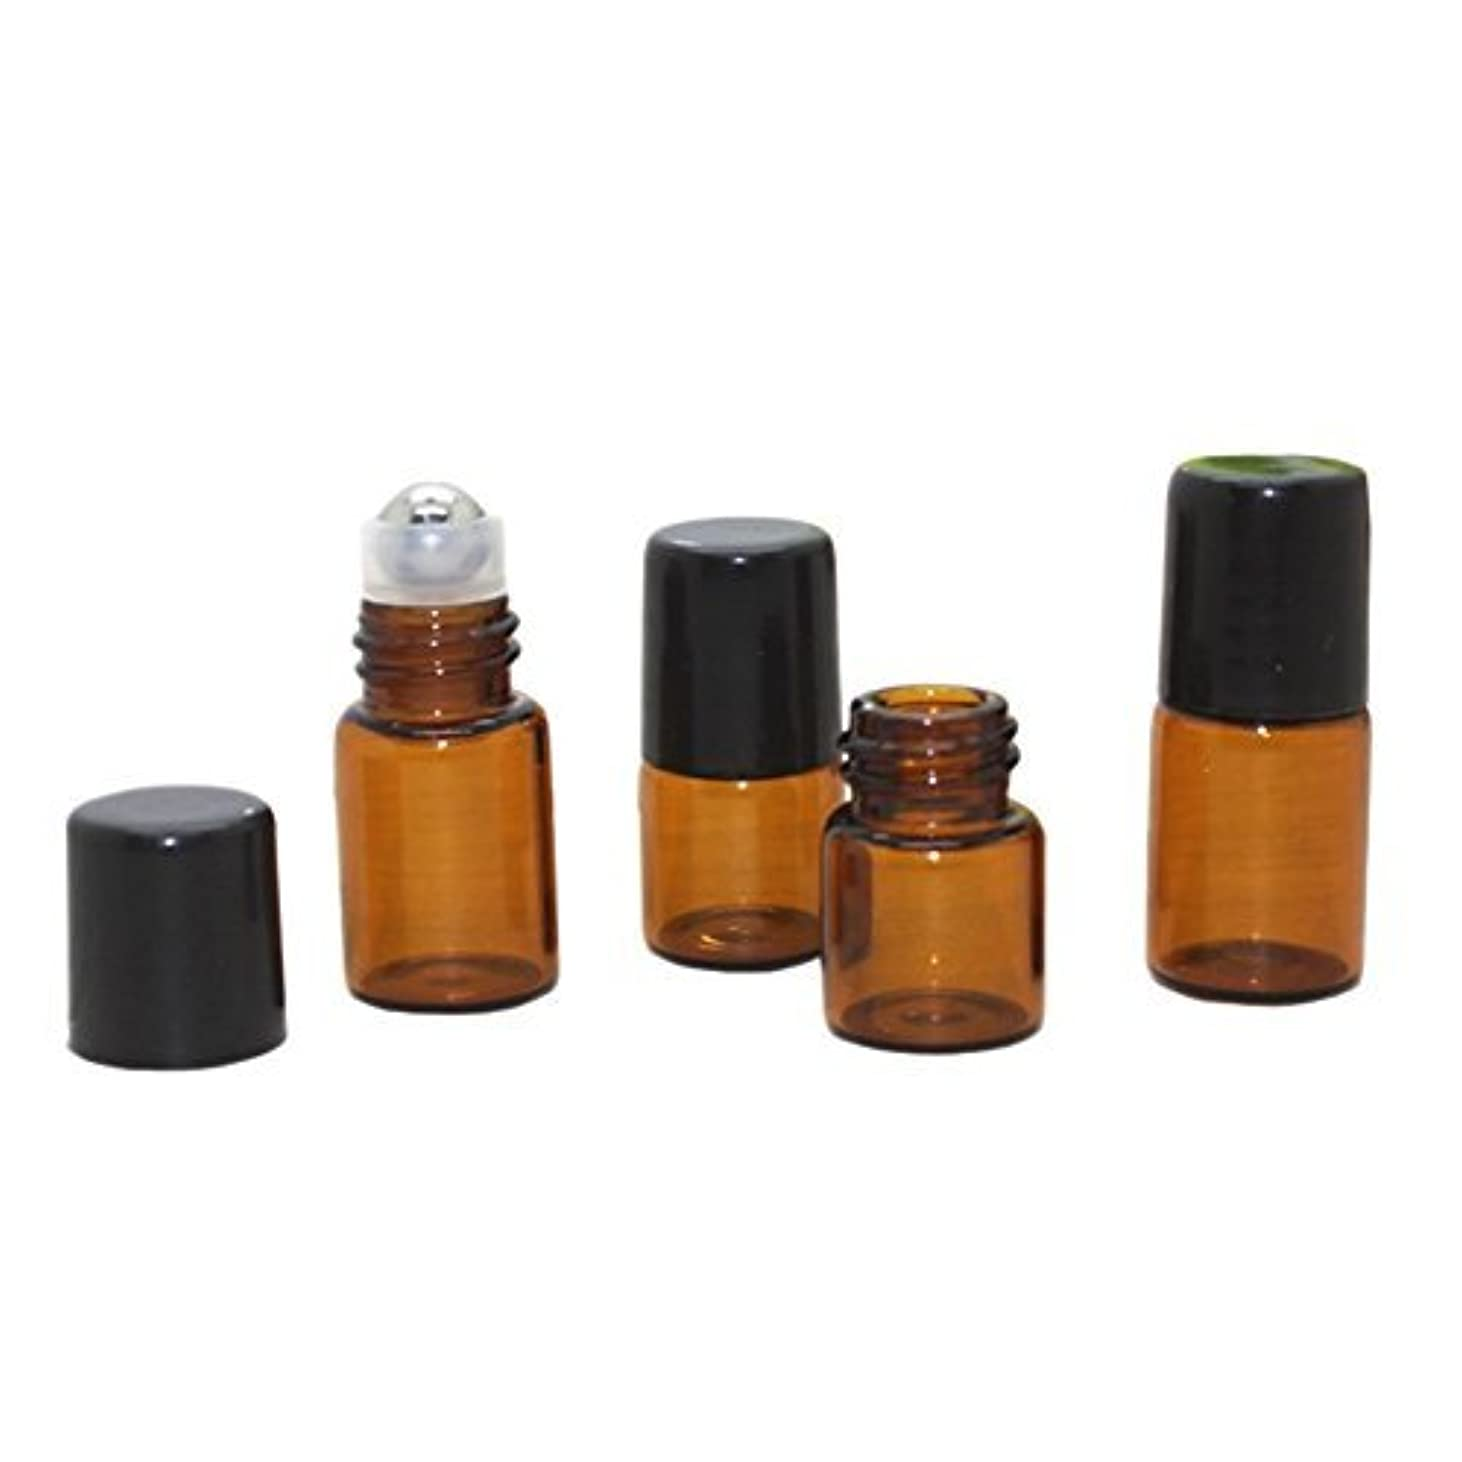 実り多い印をつける女王HugeStore 25 Pcs Mini Tiny Refillable Empty Essential Oil Glass Roller Bottles Aromatherapy Liquid Amber Glass...